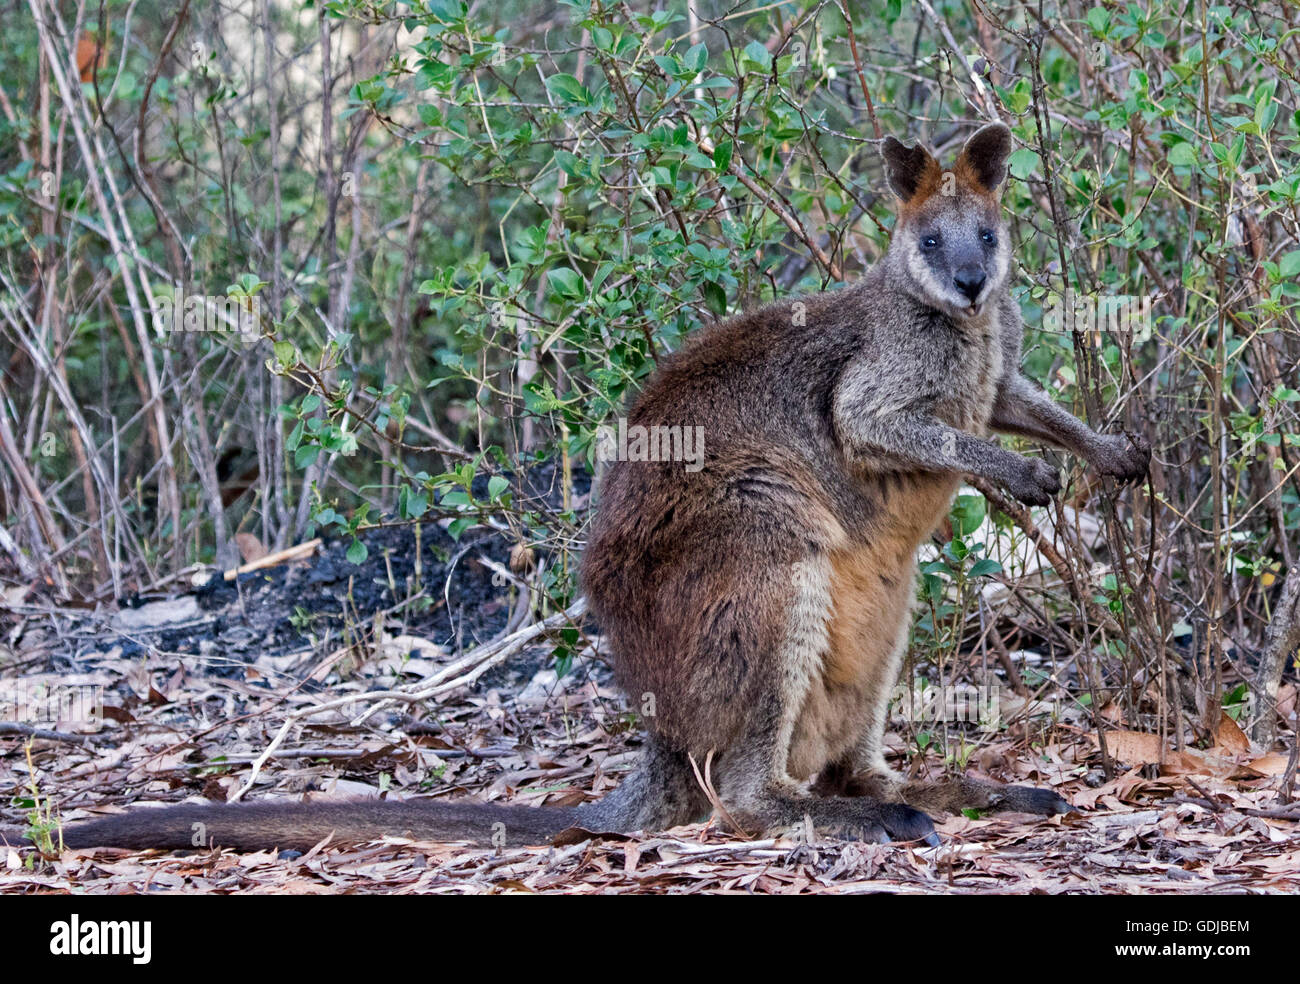 Swamp wallaby, Wallabia bicolour, with thick reddish brown fur, staring at camera, in forest in Mount Kaputar National Stock Photo